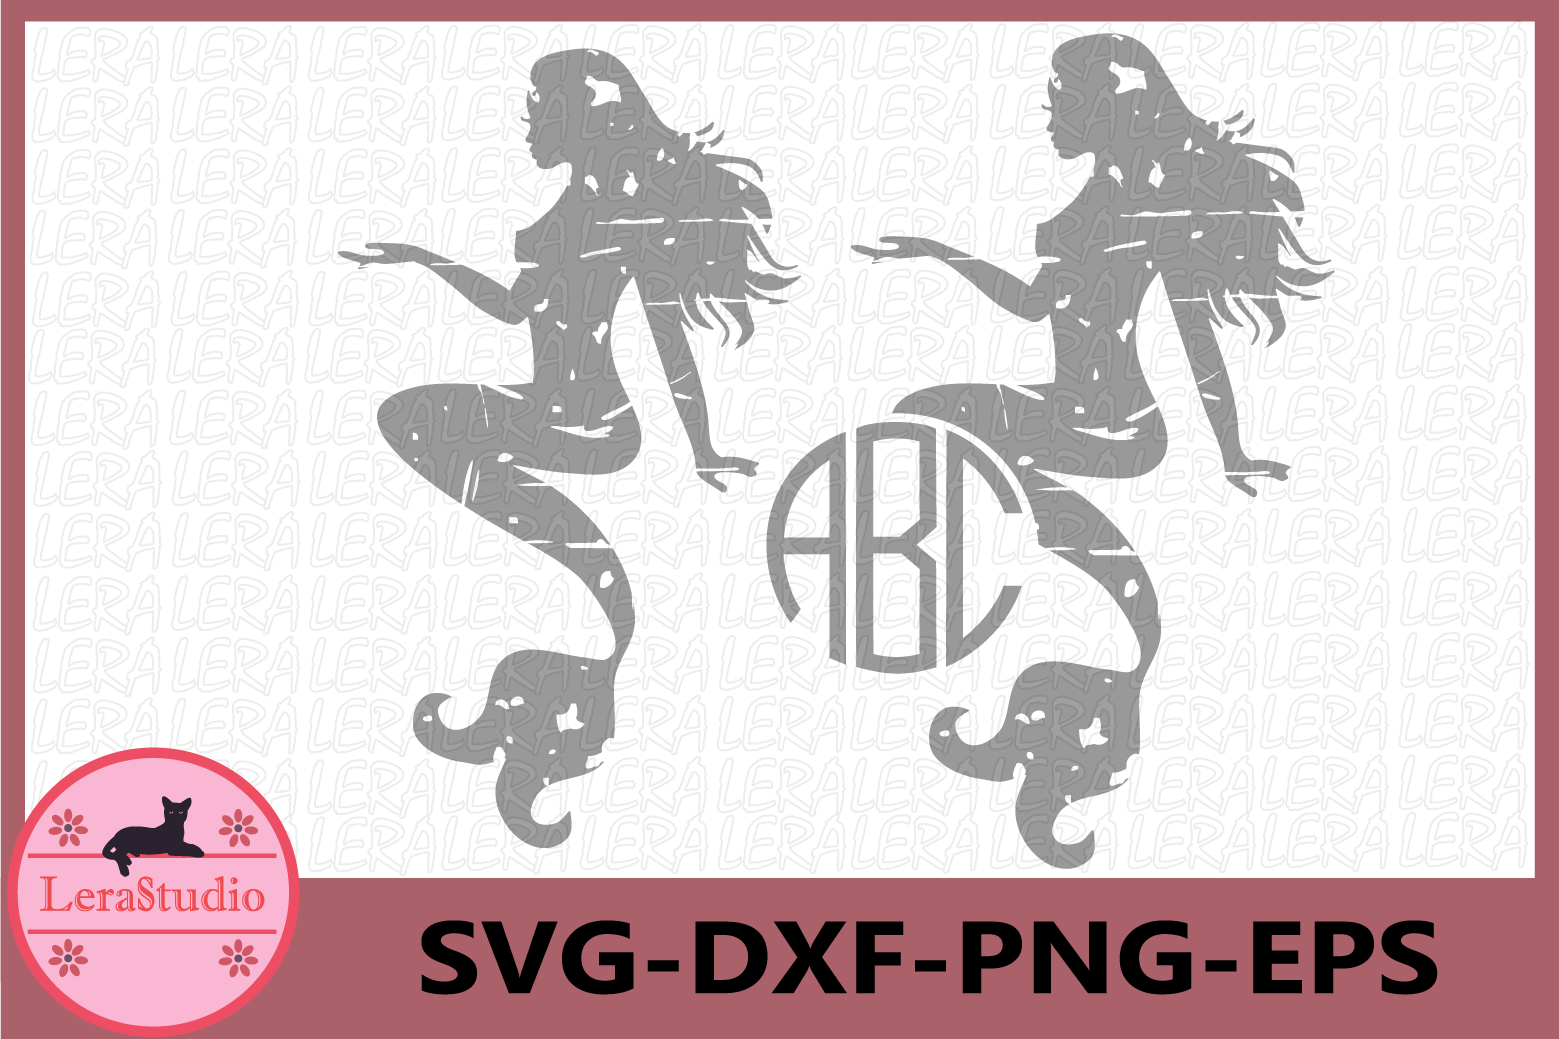 Mermaid Svg, Beach svg, Mermaid Distressed Svg, Mythology example image 1